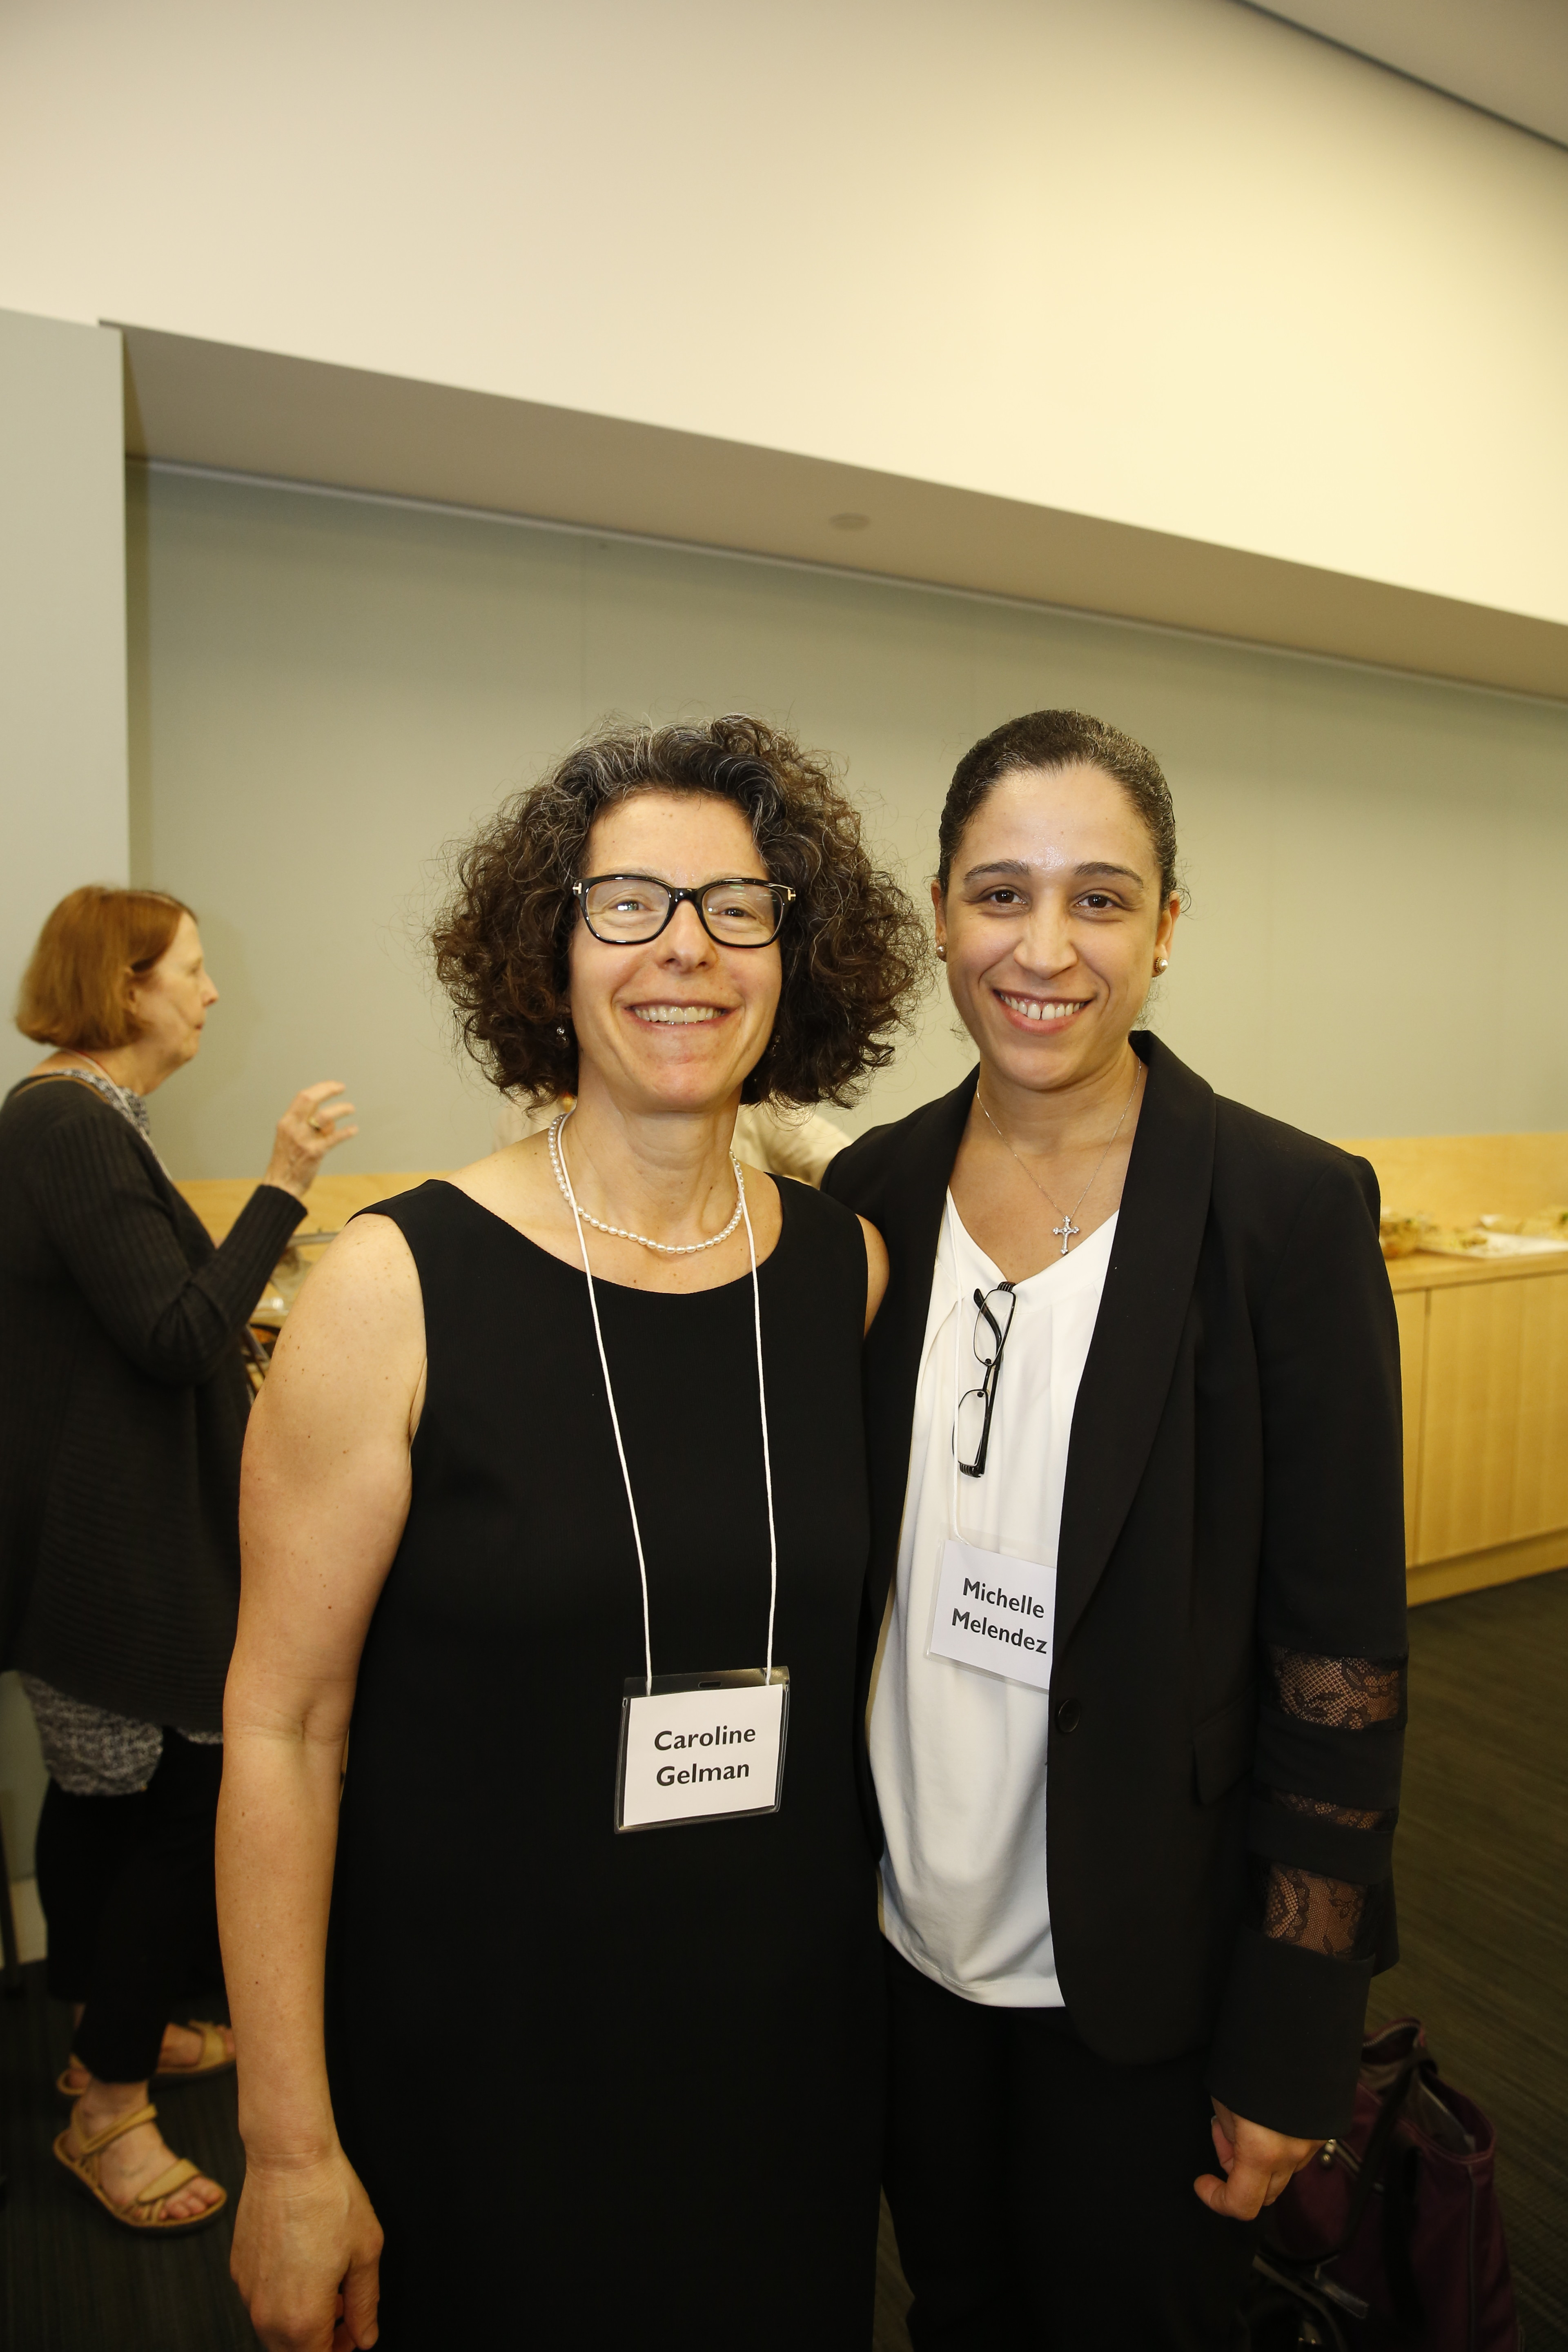 Dr. Caroline Gelman, Conference Co-Director and Director of Education, Training, and Lifelong Learning at Silberman Aging, with presenter Michelle Melendez.